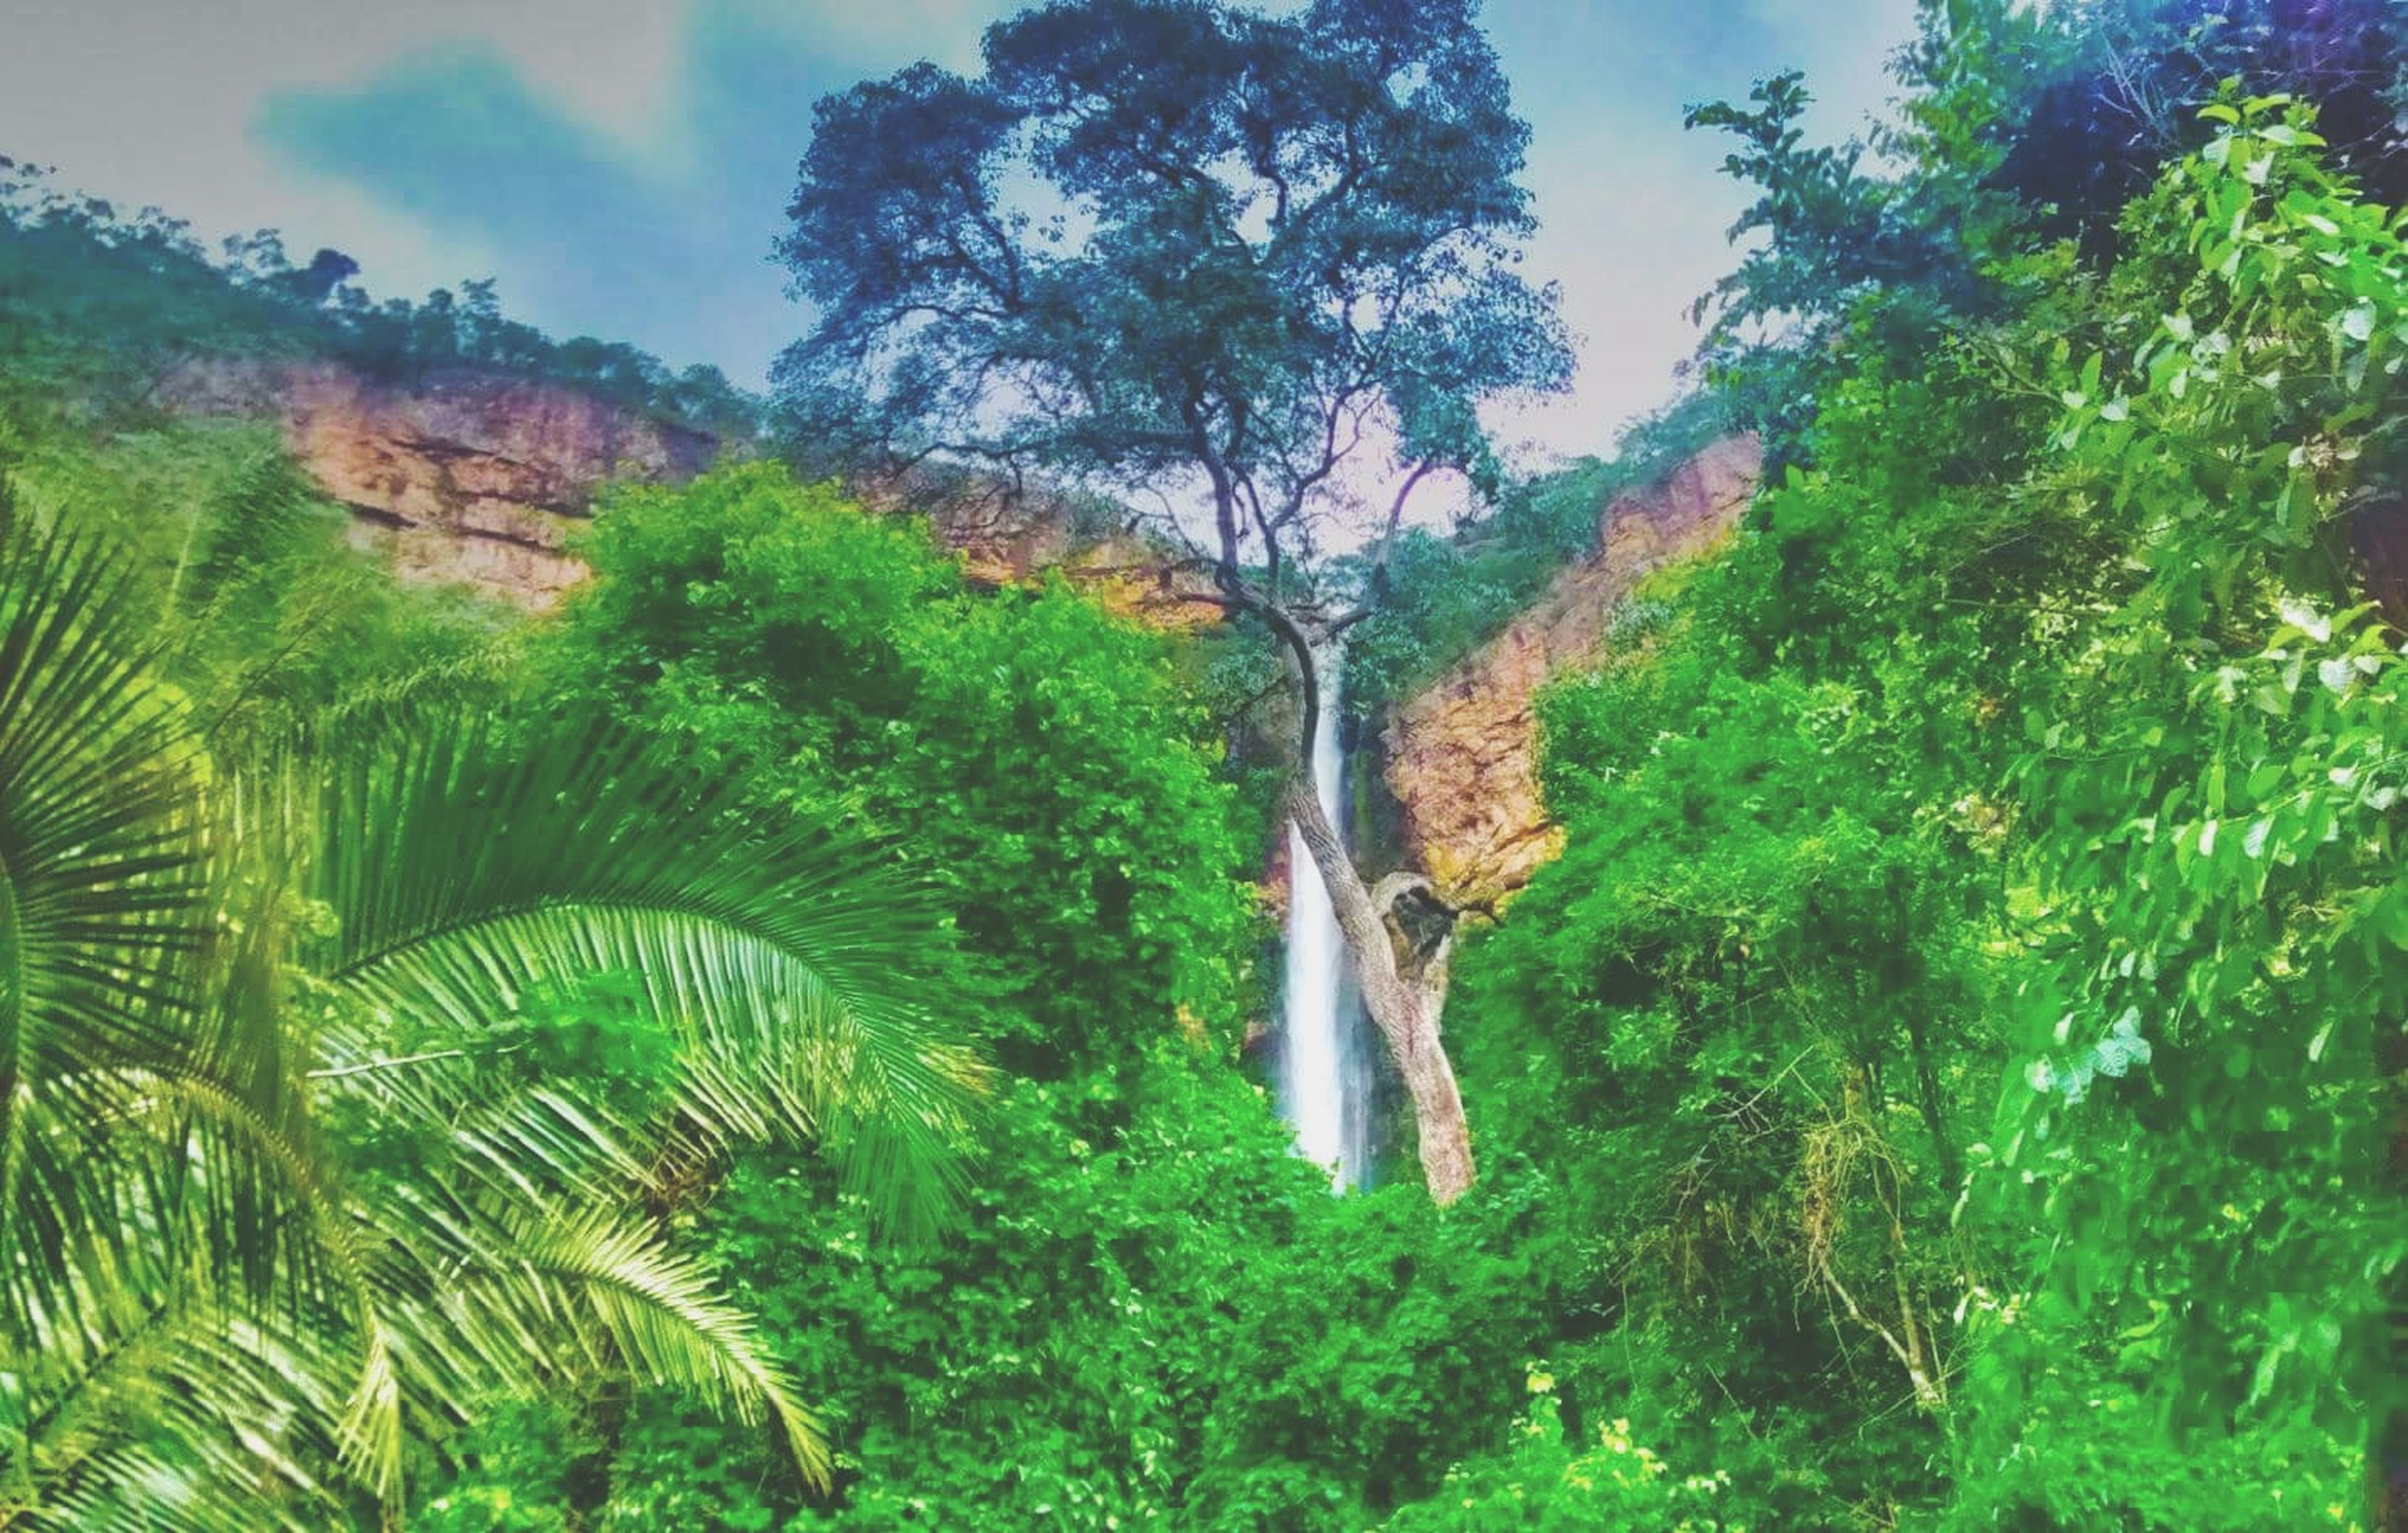 tree, beauty in nature, scenics, nature, growth, tranquility, green color, tranquil scene, forest, waterfall, idyllic, lush foliage, non-urban scene, sky, mountain, plant, day, landscape, green, outdoors